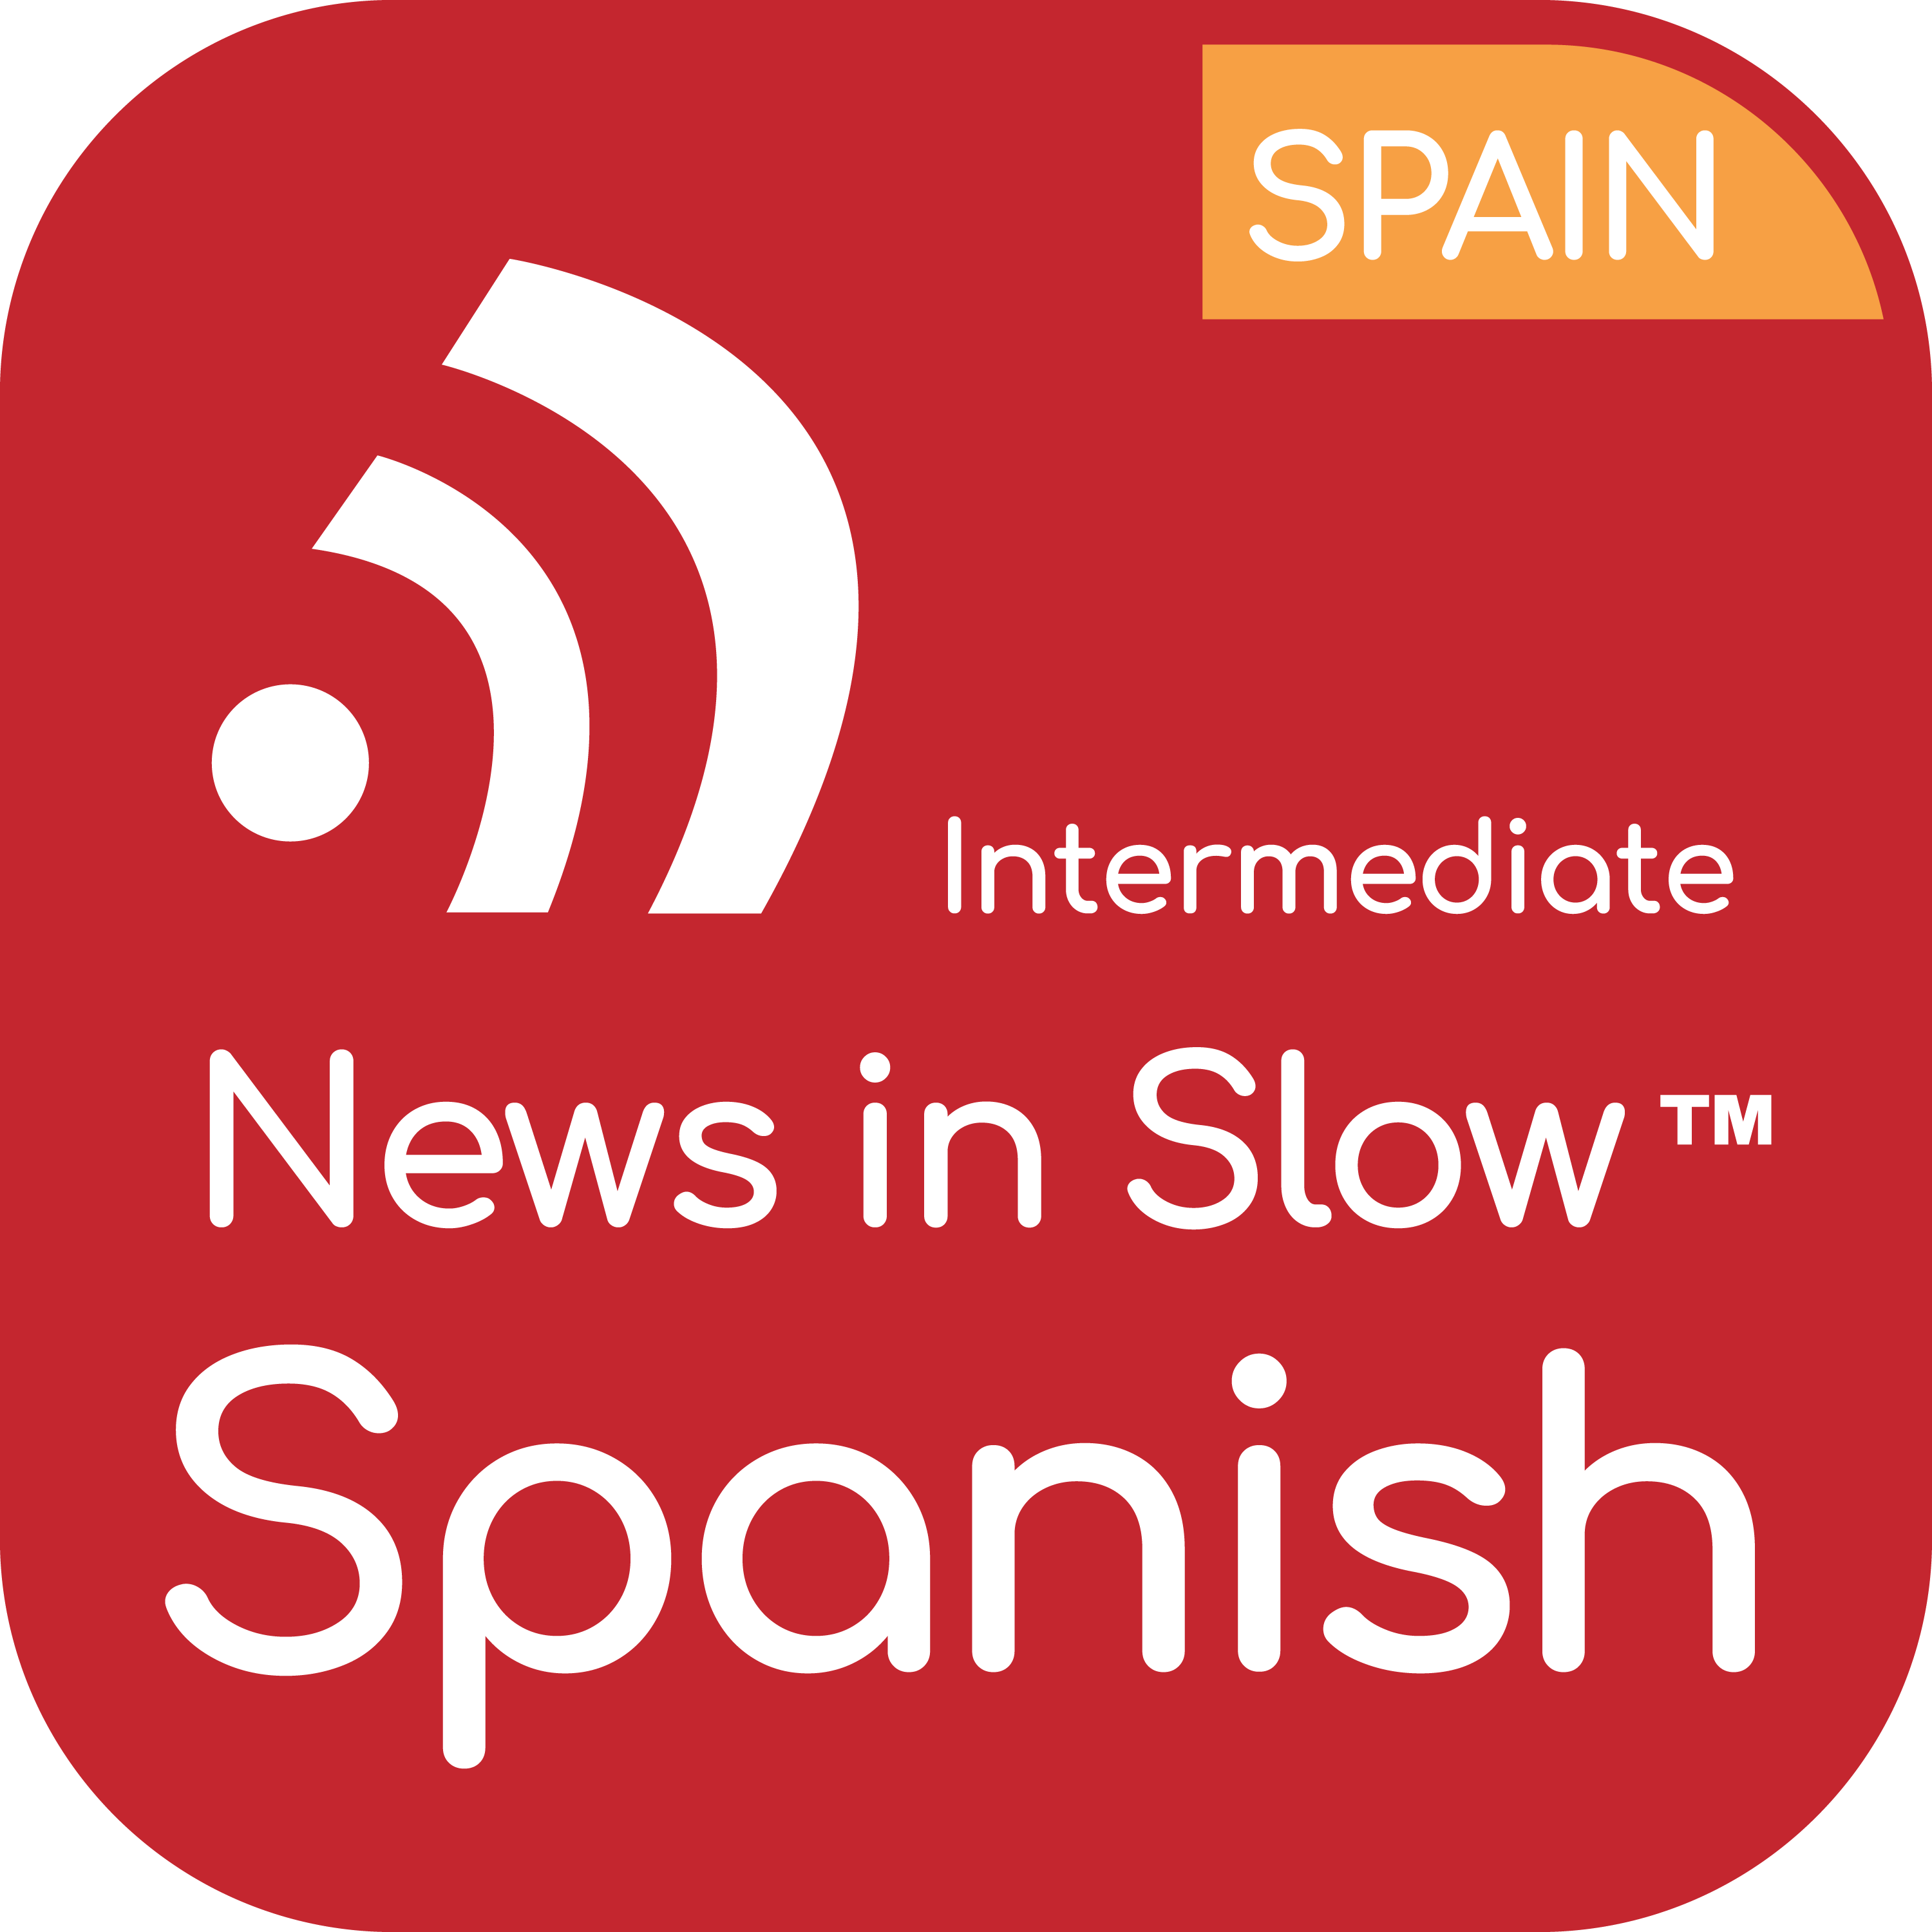 News in Slow Spanish - #355 - Language learning in the context of current events